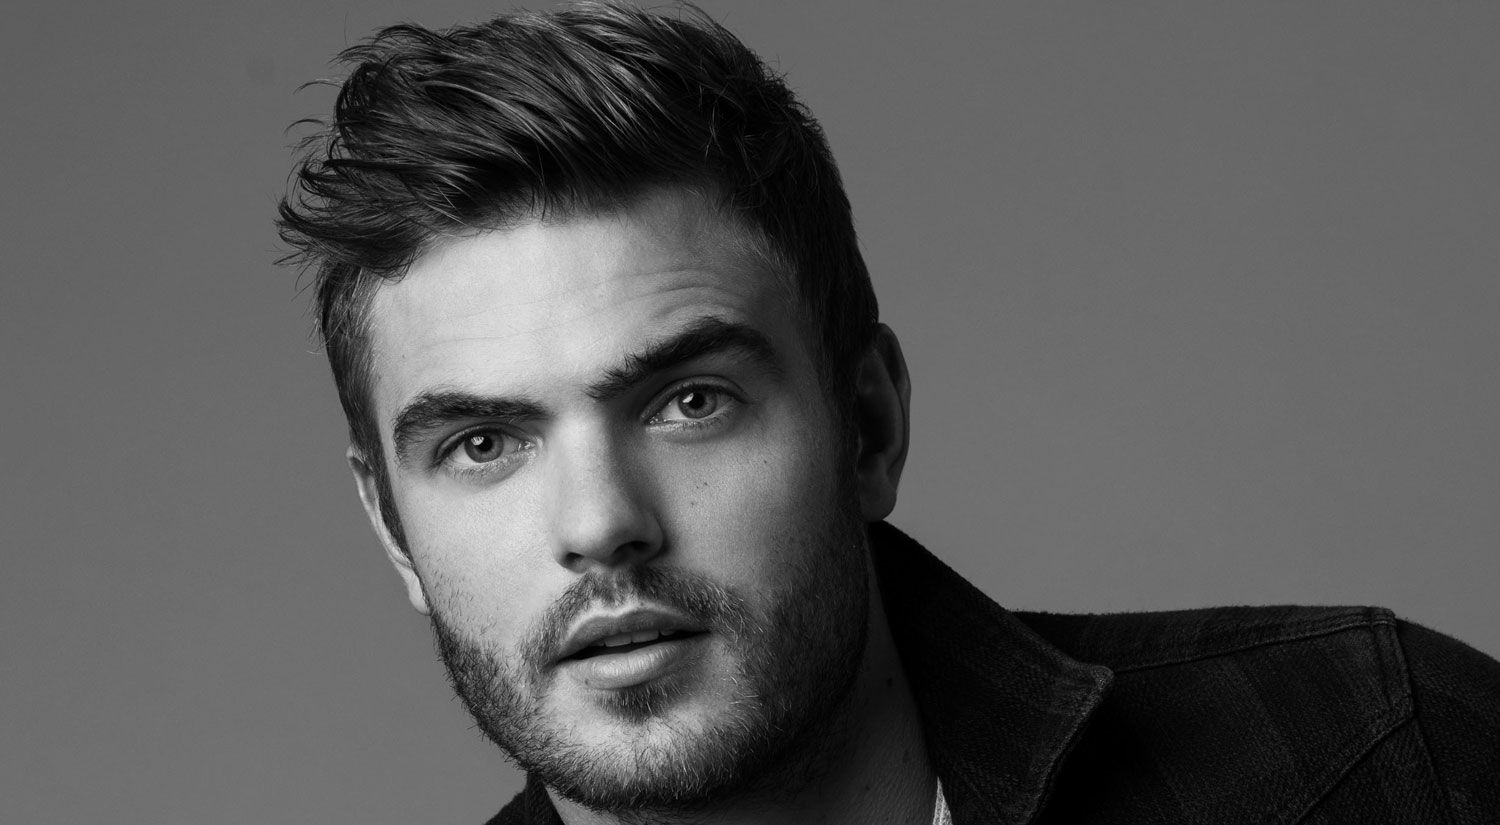 Fifth Wave Alex Roe | The 5th Wave's Alex Roe Talks Filming His Own Stunts, His Celeb ...